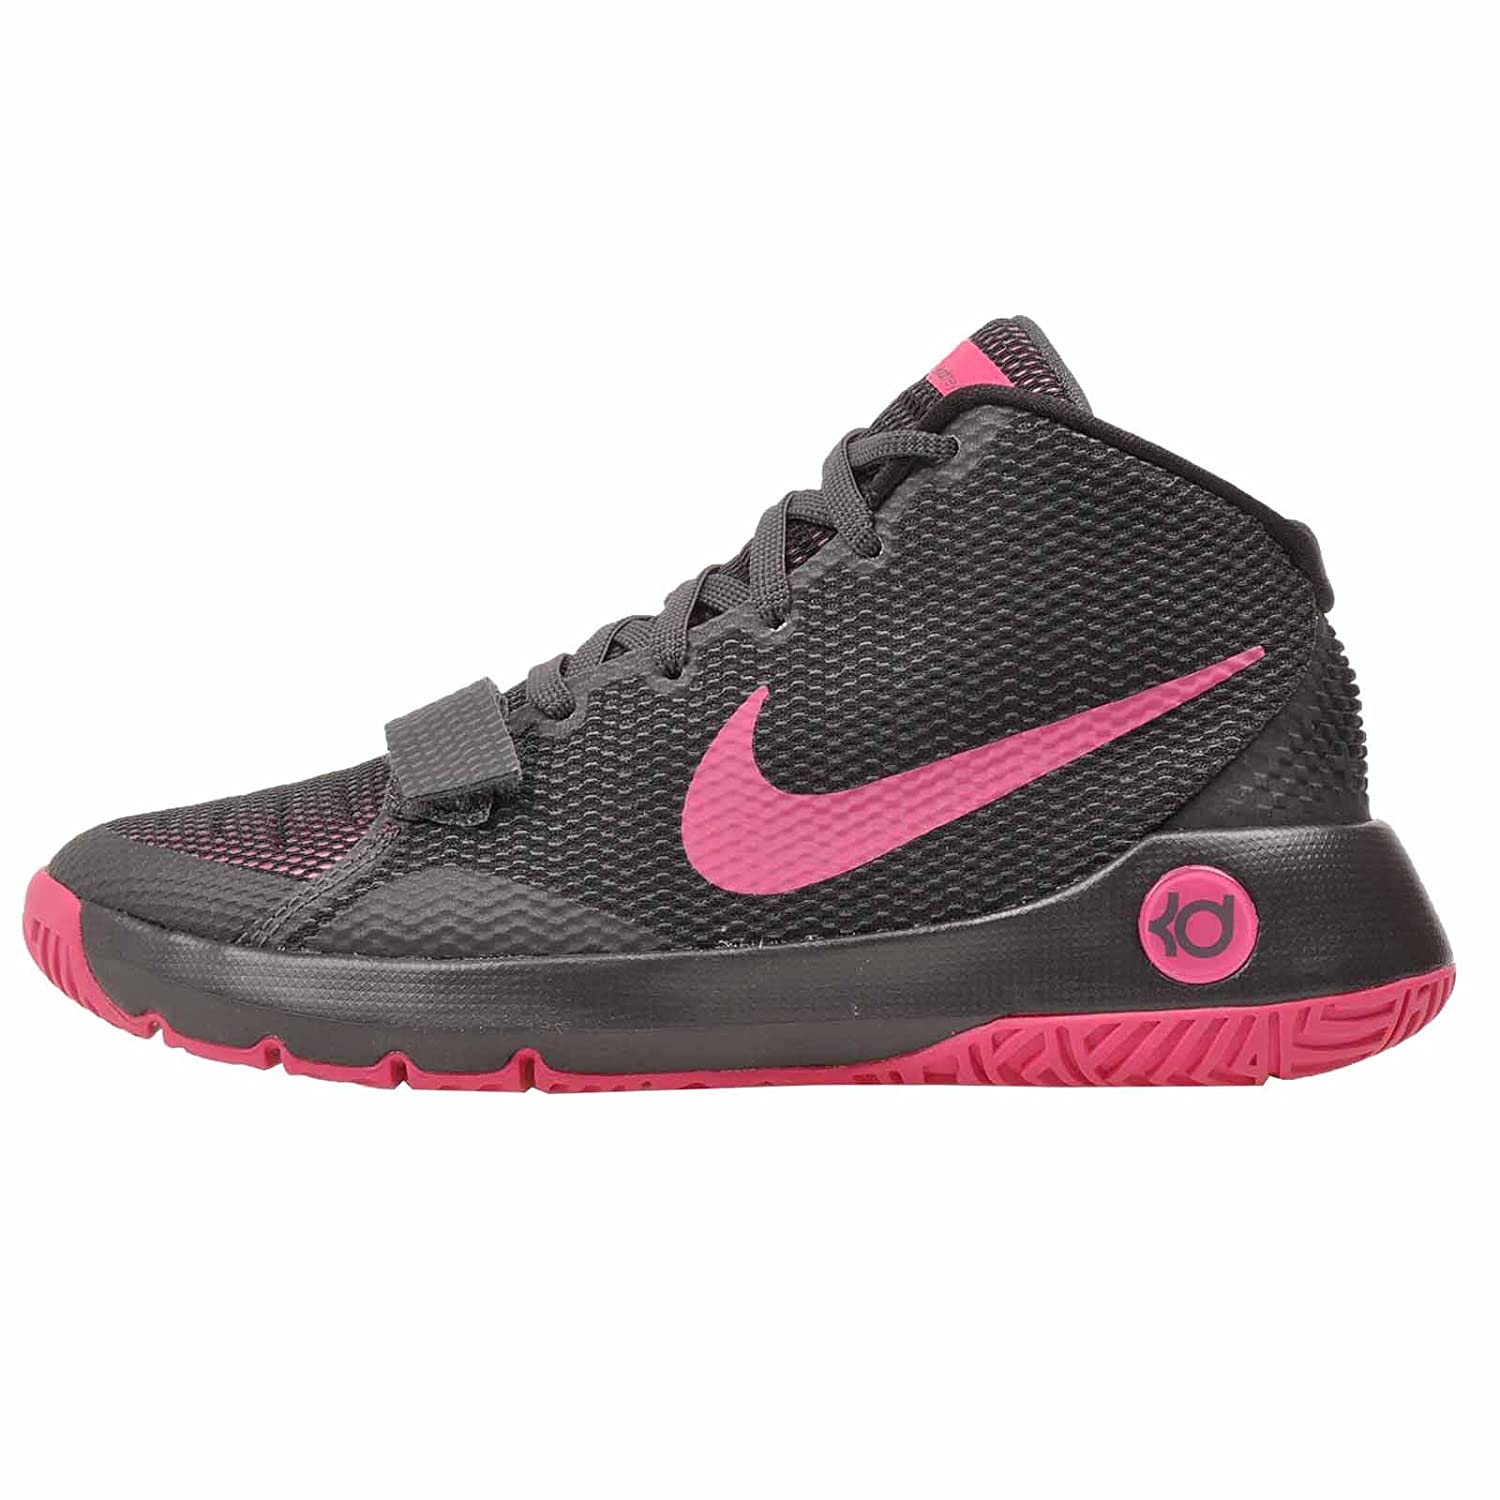 4dccc822b880 ... discount code for nike kids kd trey 5 iii gs basketball shoes 5d3dd  a28f0